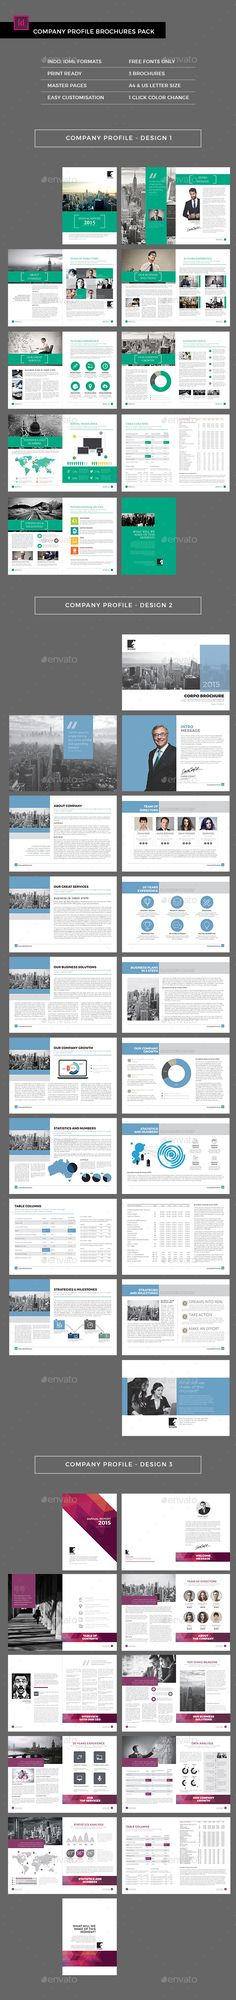 Company profile template PowerPoint The template is available in - professional business profile template